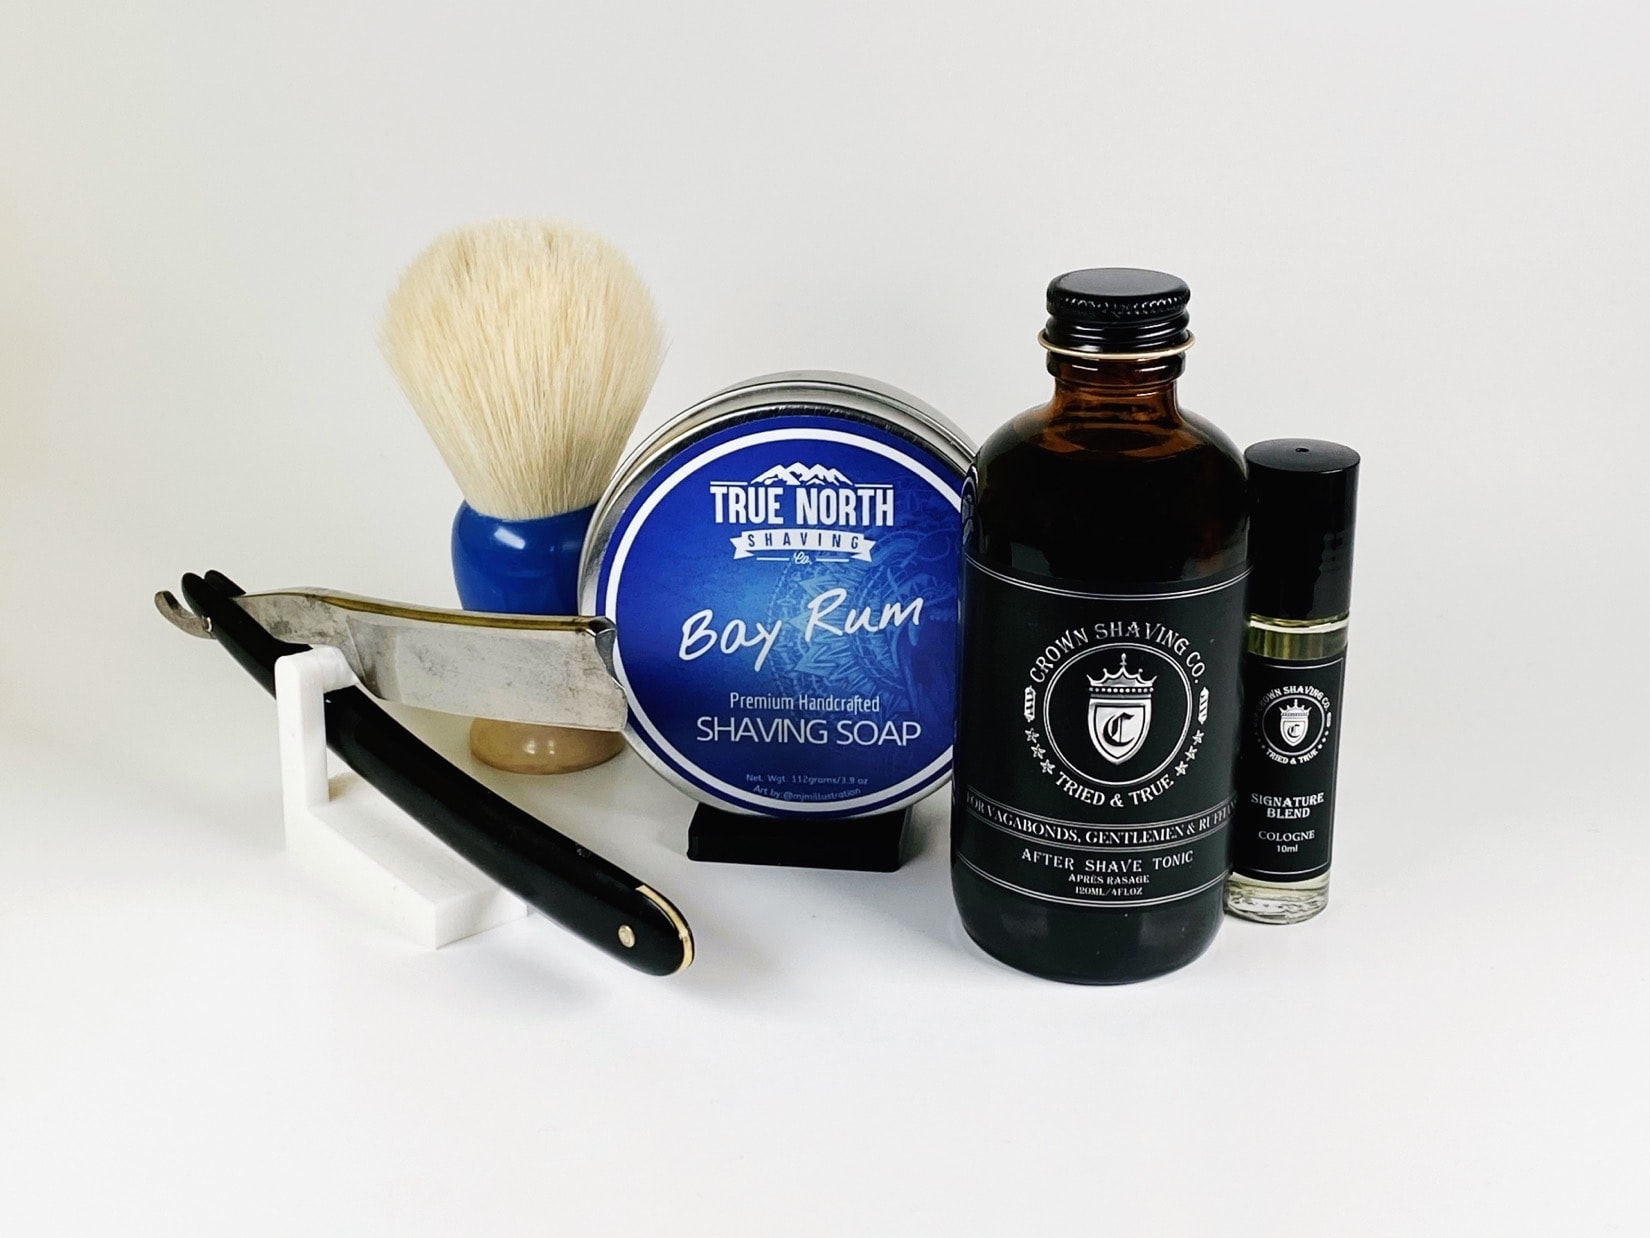 SOTD – March 1, 2020 #7DaysofBarbershop